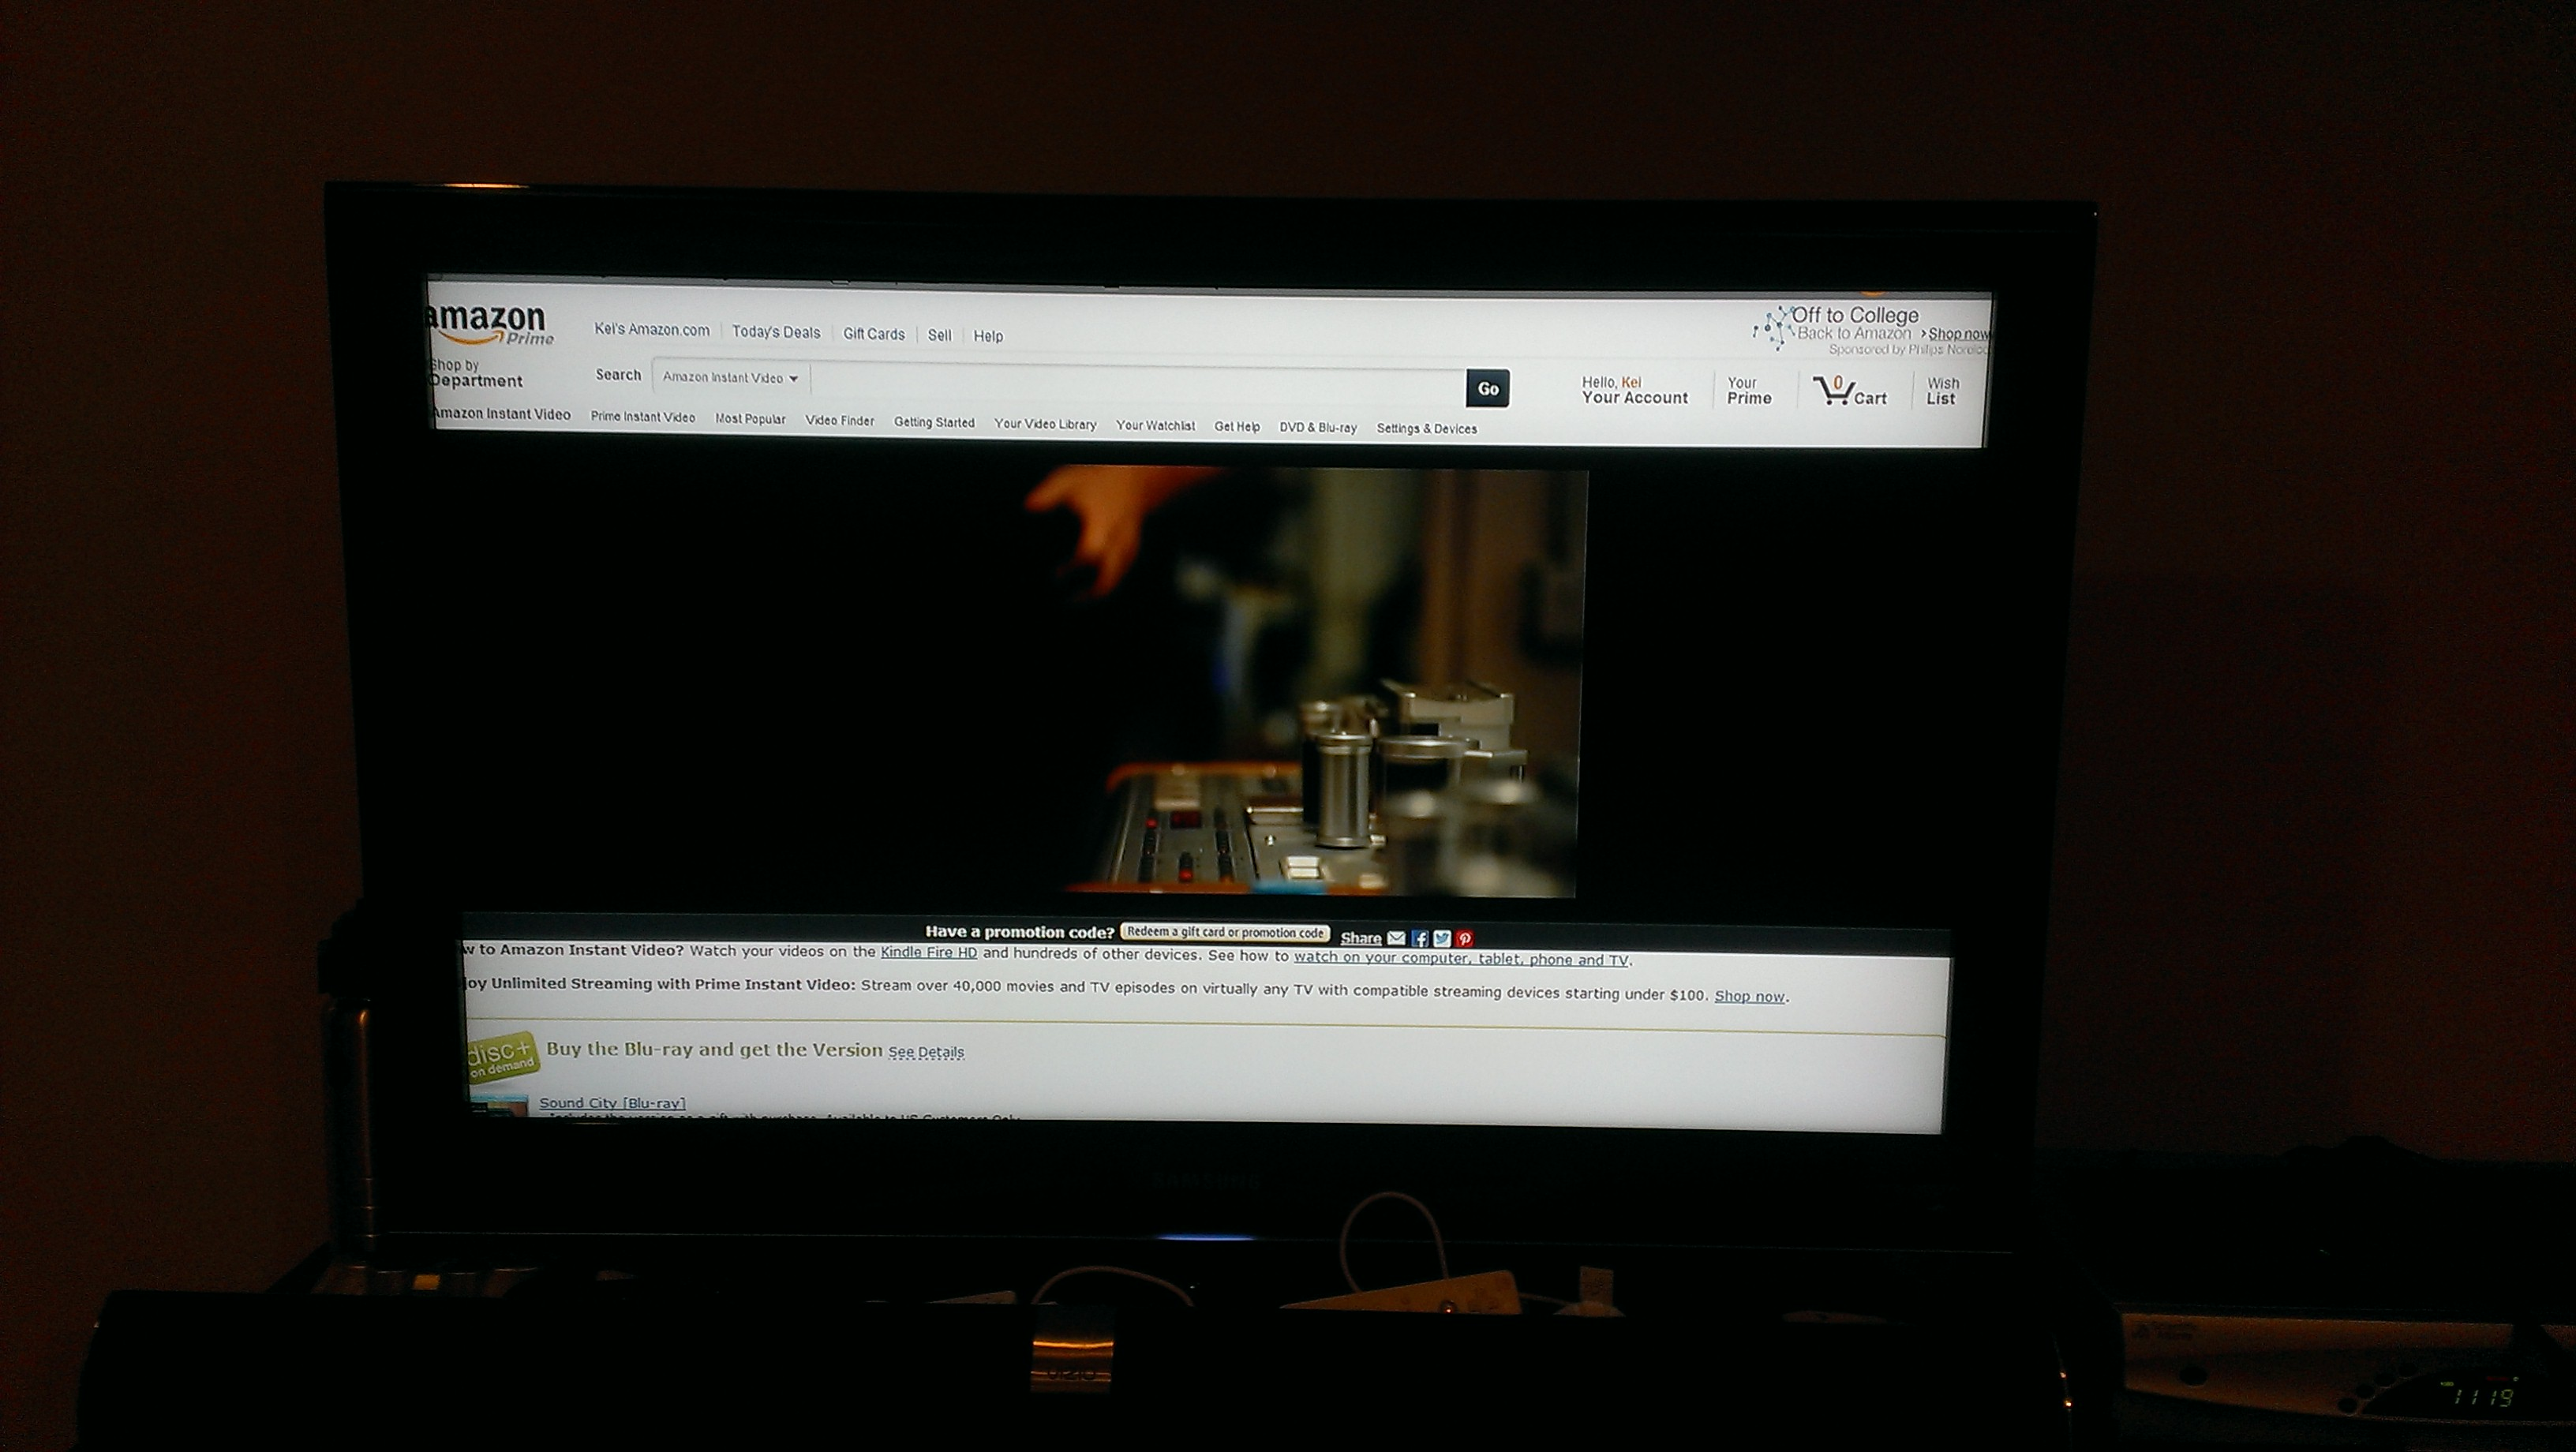 chromecast amazon prime tv screenshot